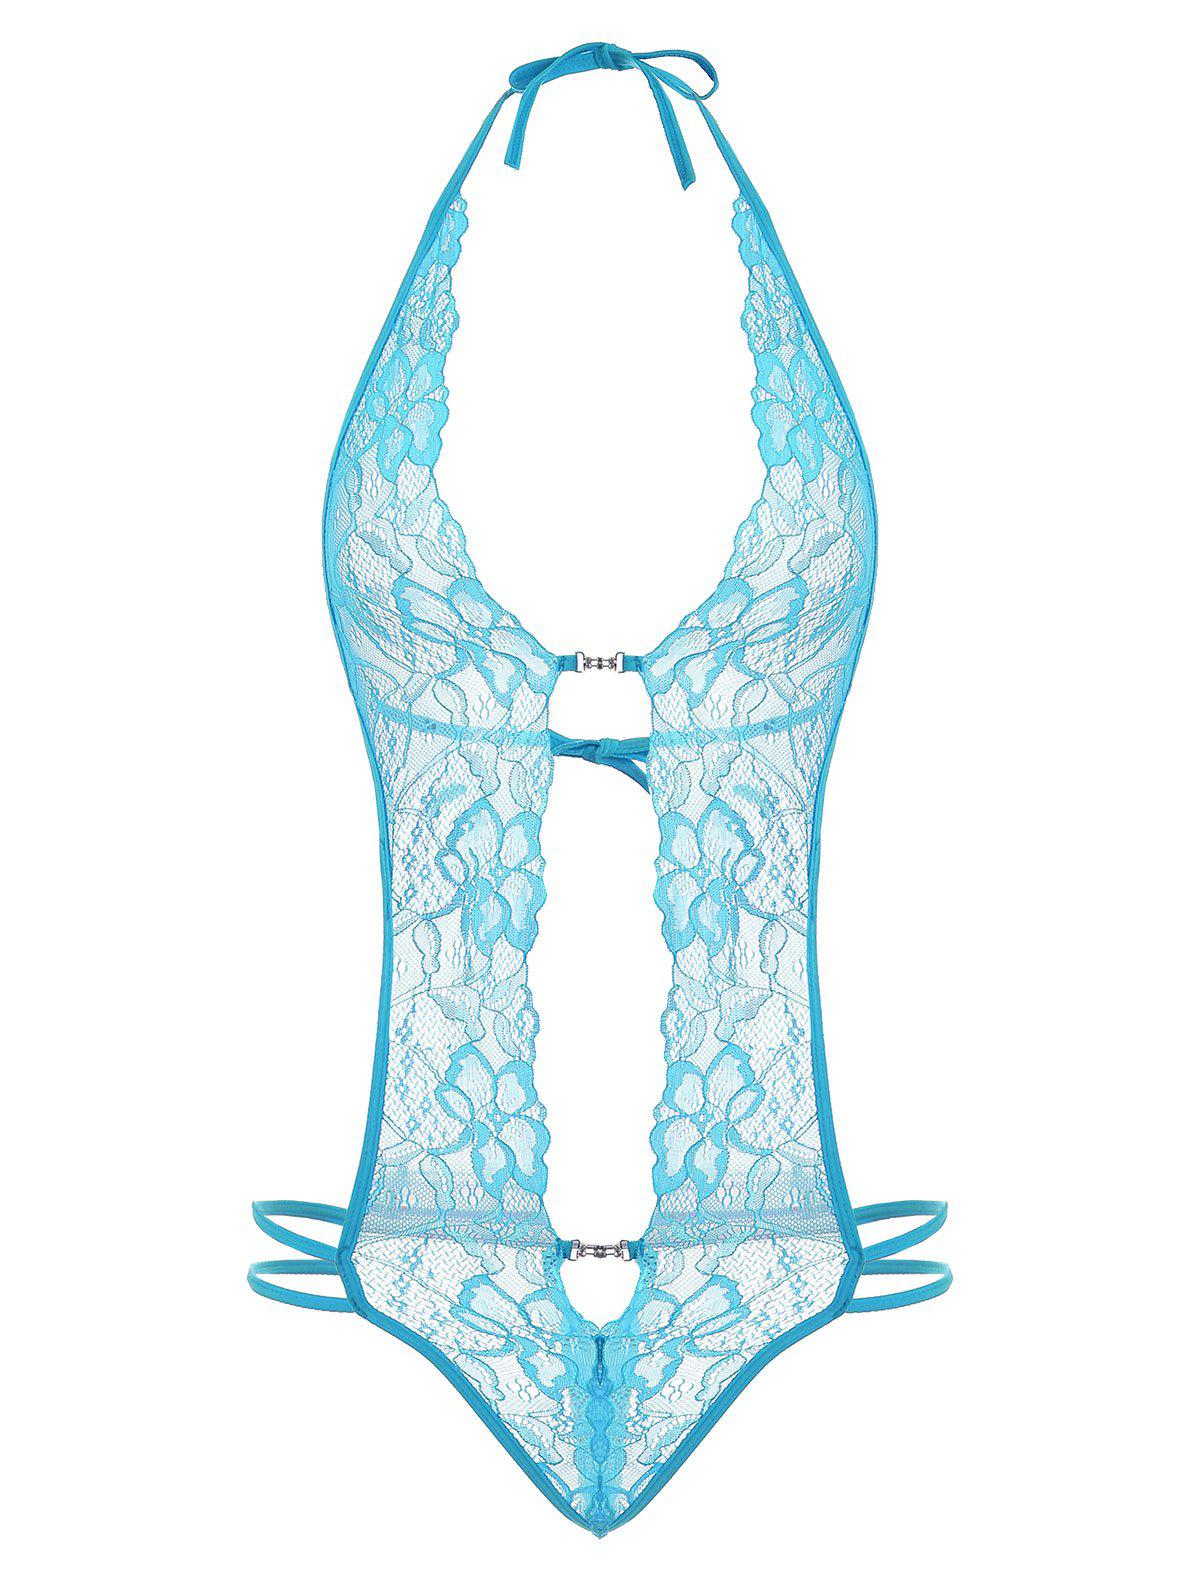 Low Cut Halter Lace Teddy - Bleu clair S